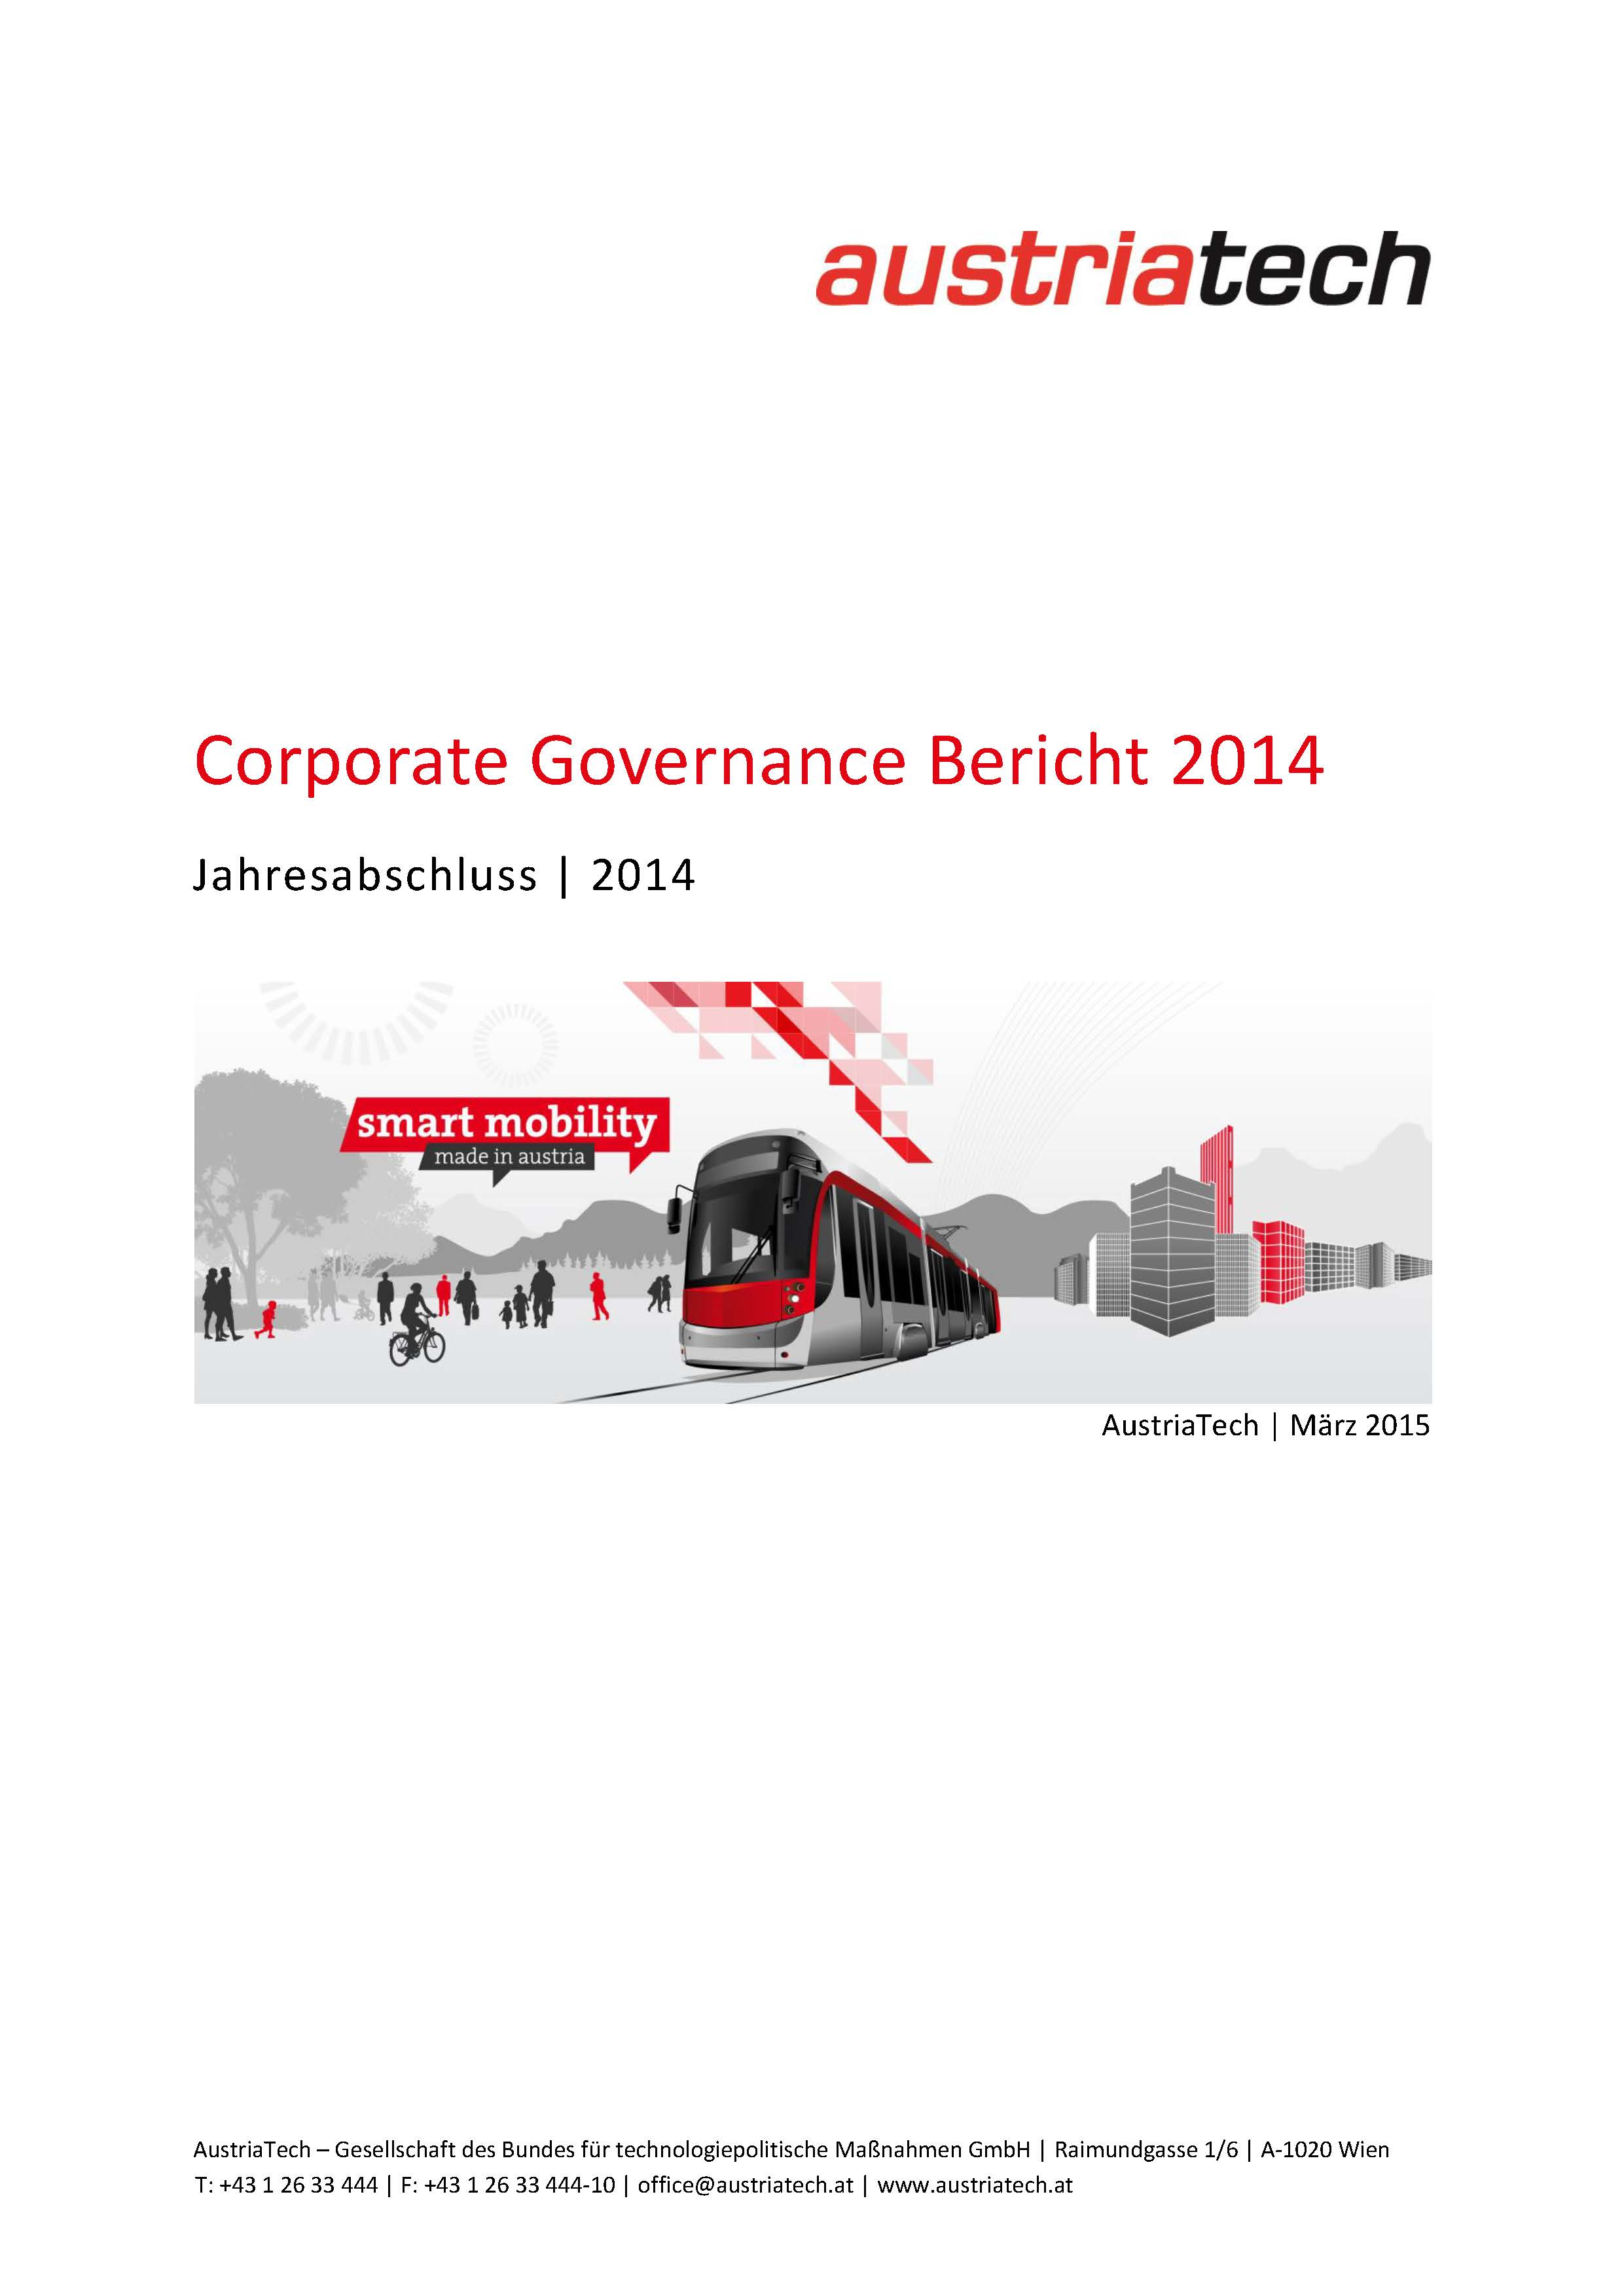 AustriaTech Corporate Governance 2014